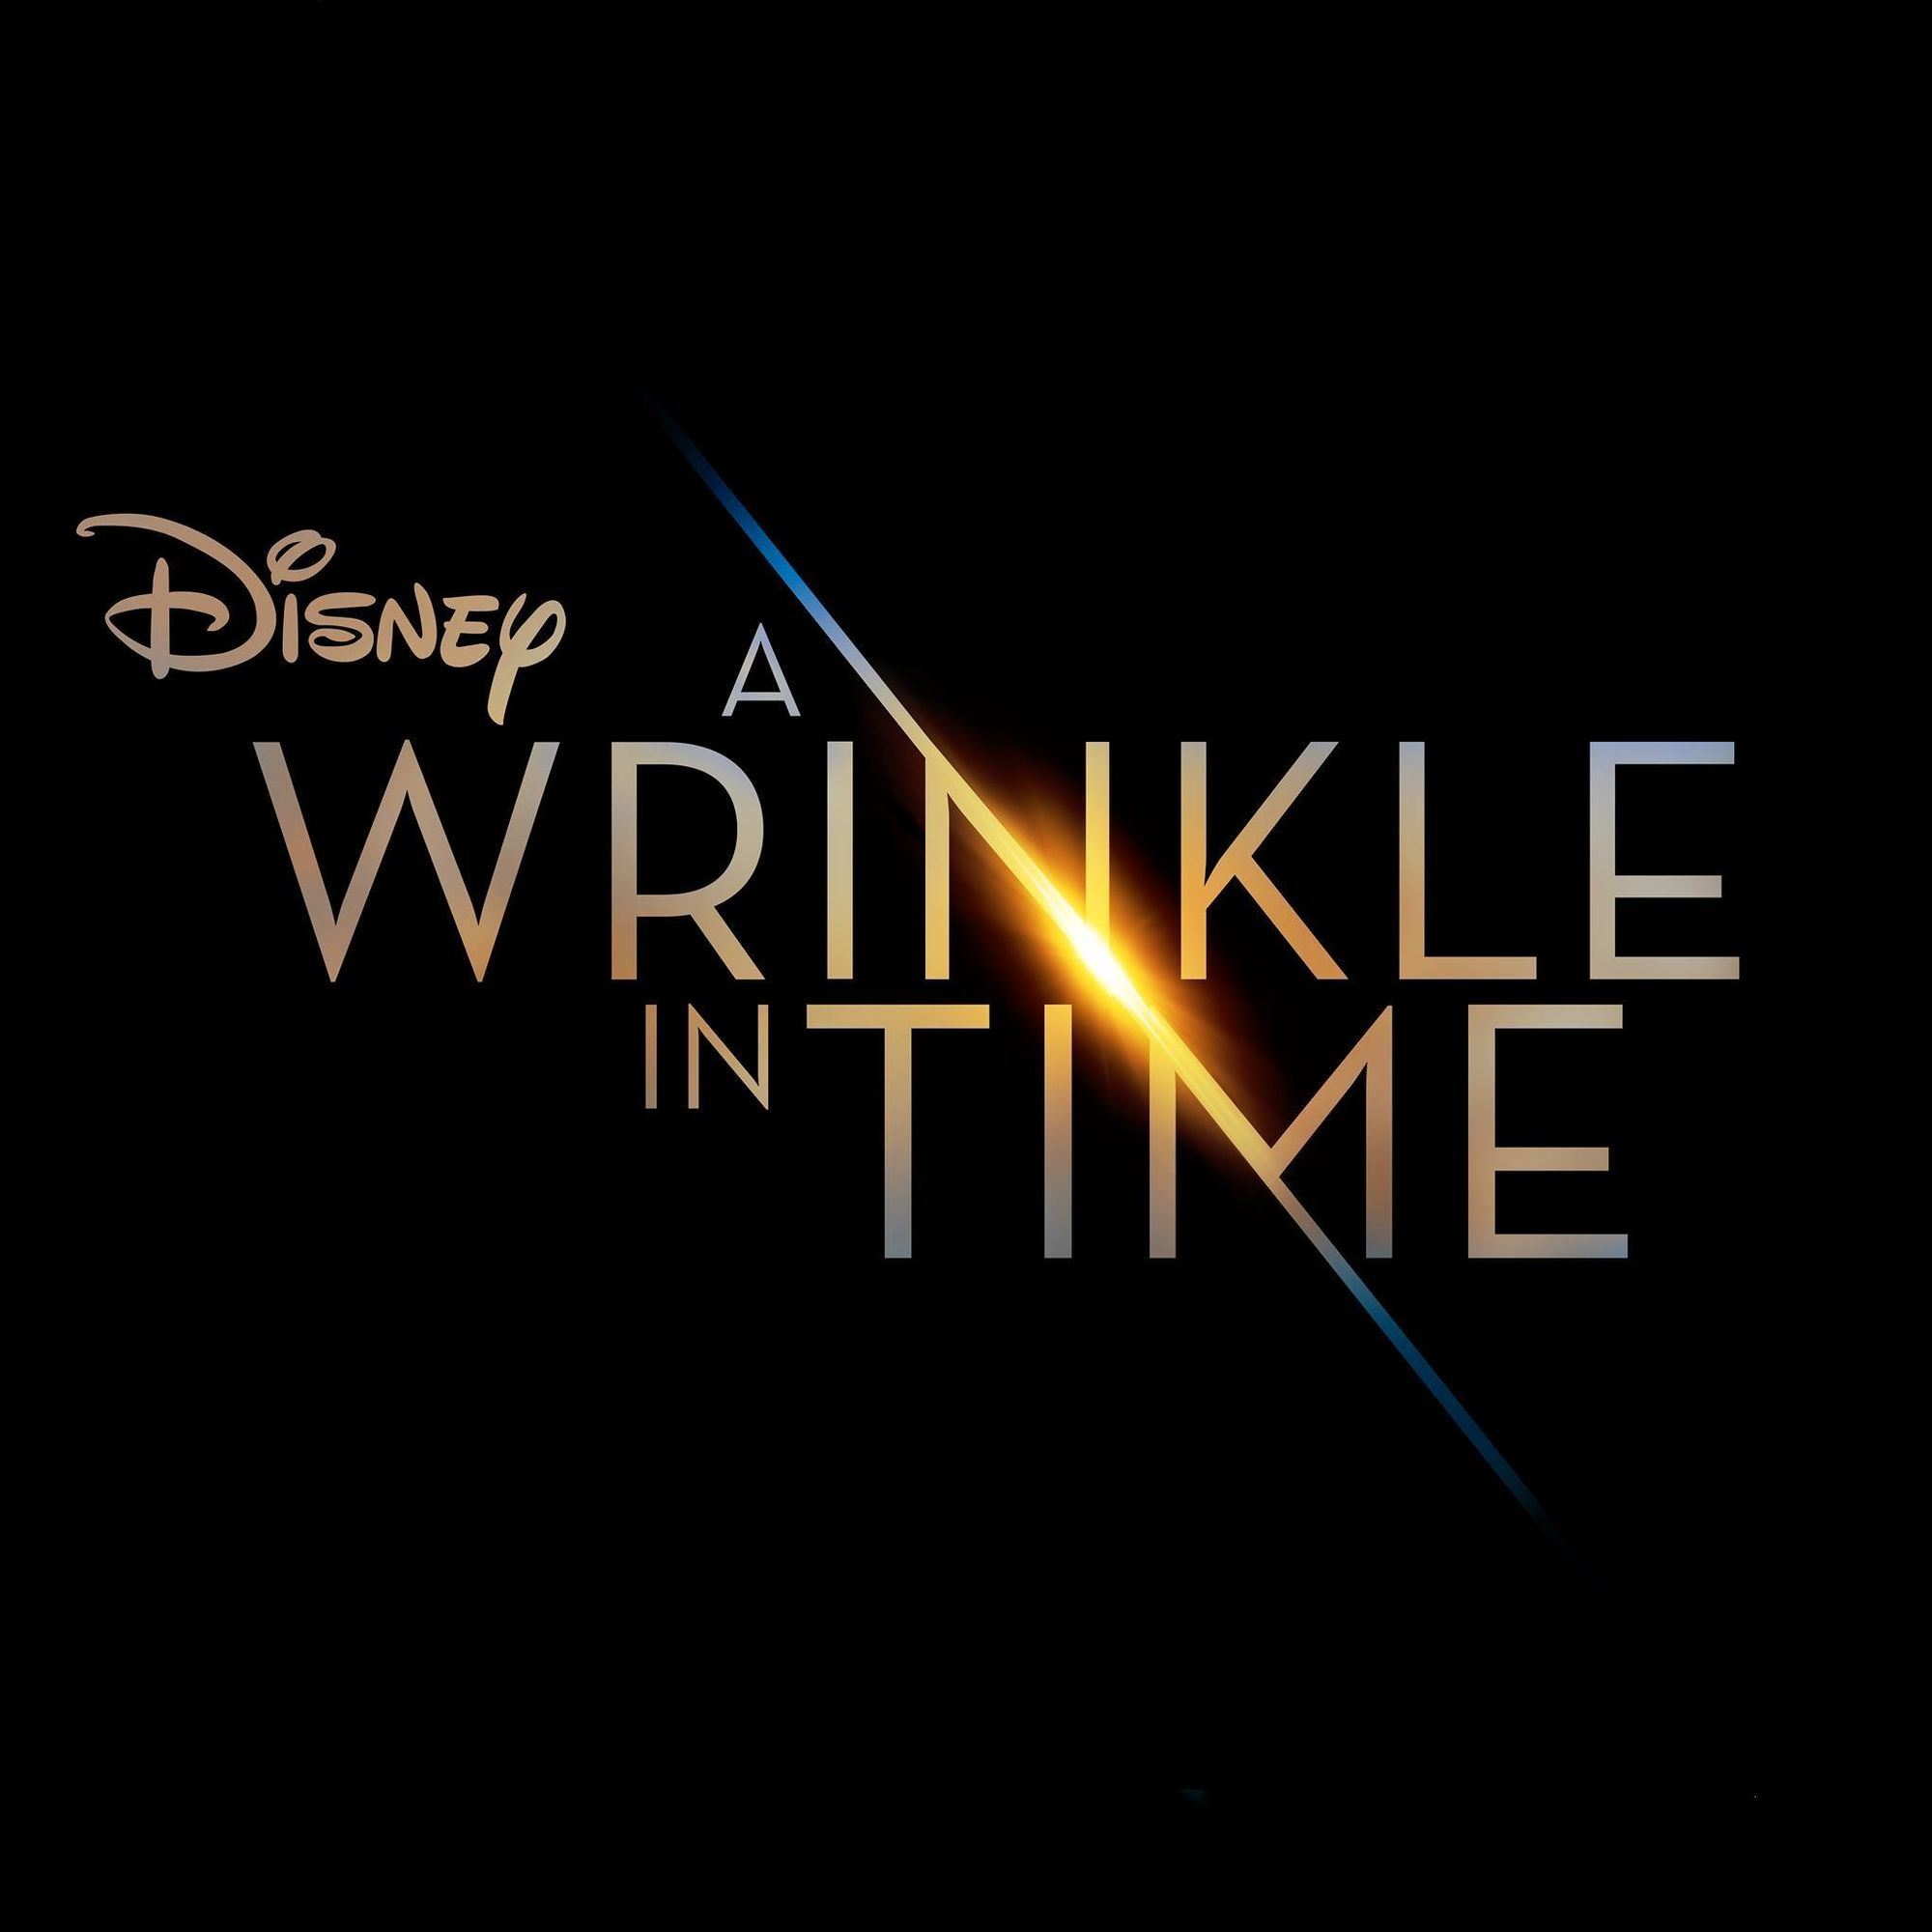 A_Wrinkle_in_Time_SADE